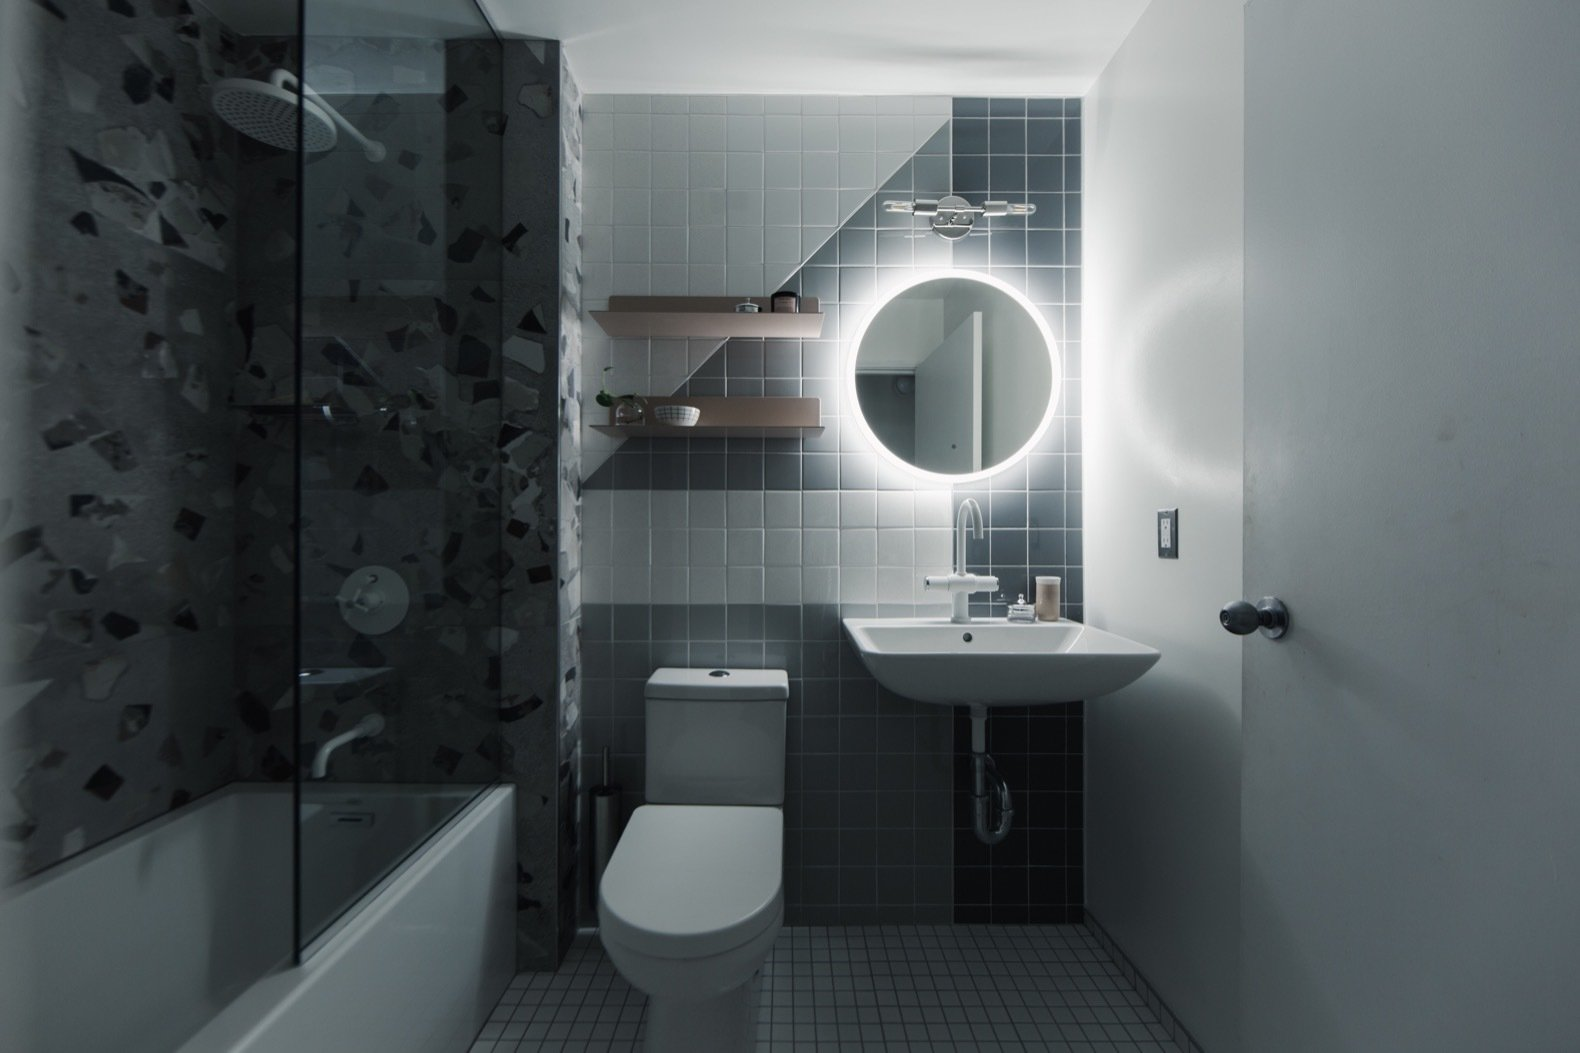 Bath, Porcelain Tile, Two Piece, Wall, Enclosed, Wall Mount, Soaking, Ceramic Tile, and Alcove Recessed cans, a Miseno illuminated mirror, and accent Dutton Brown sconce are all switched separately to provide lighting flexibility.  Best Bath Alcove Ceramic Tile Photos from Budget Breakdown: A Humdrum Bathroom Gets a Retro-Chic Facelift For $17K